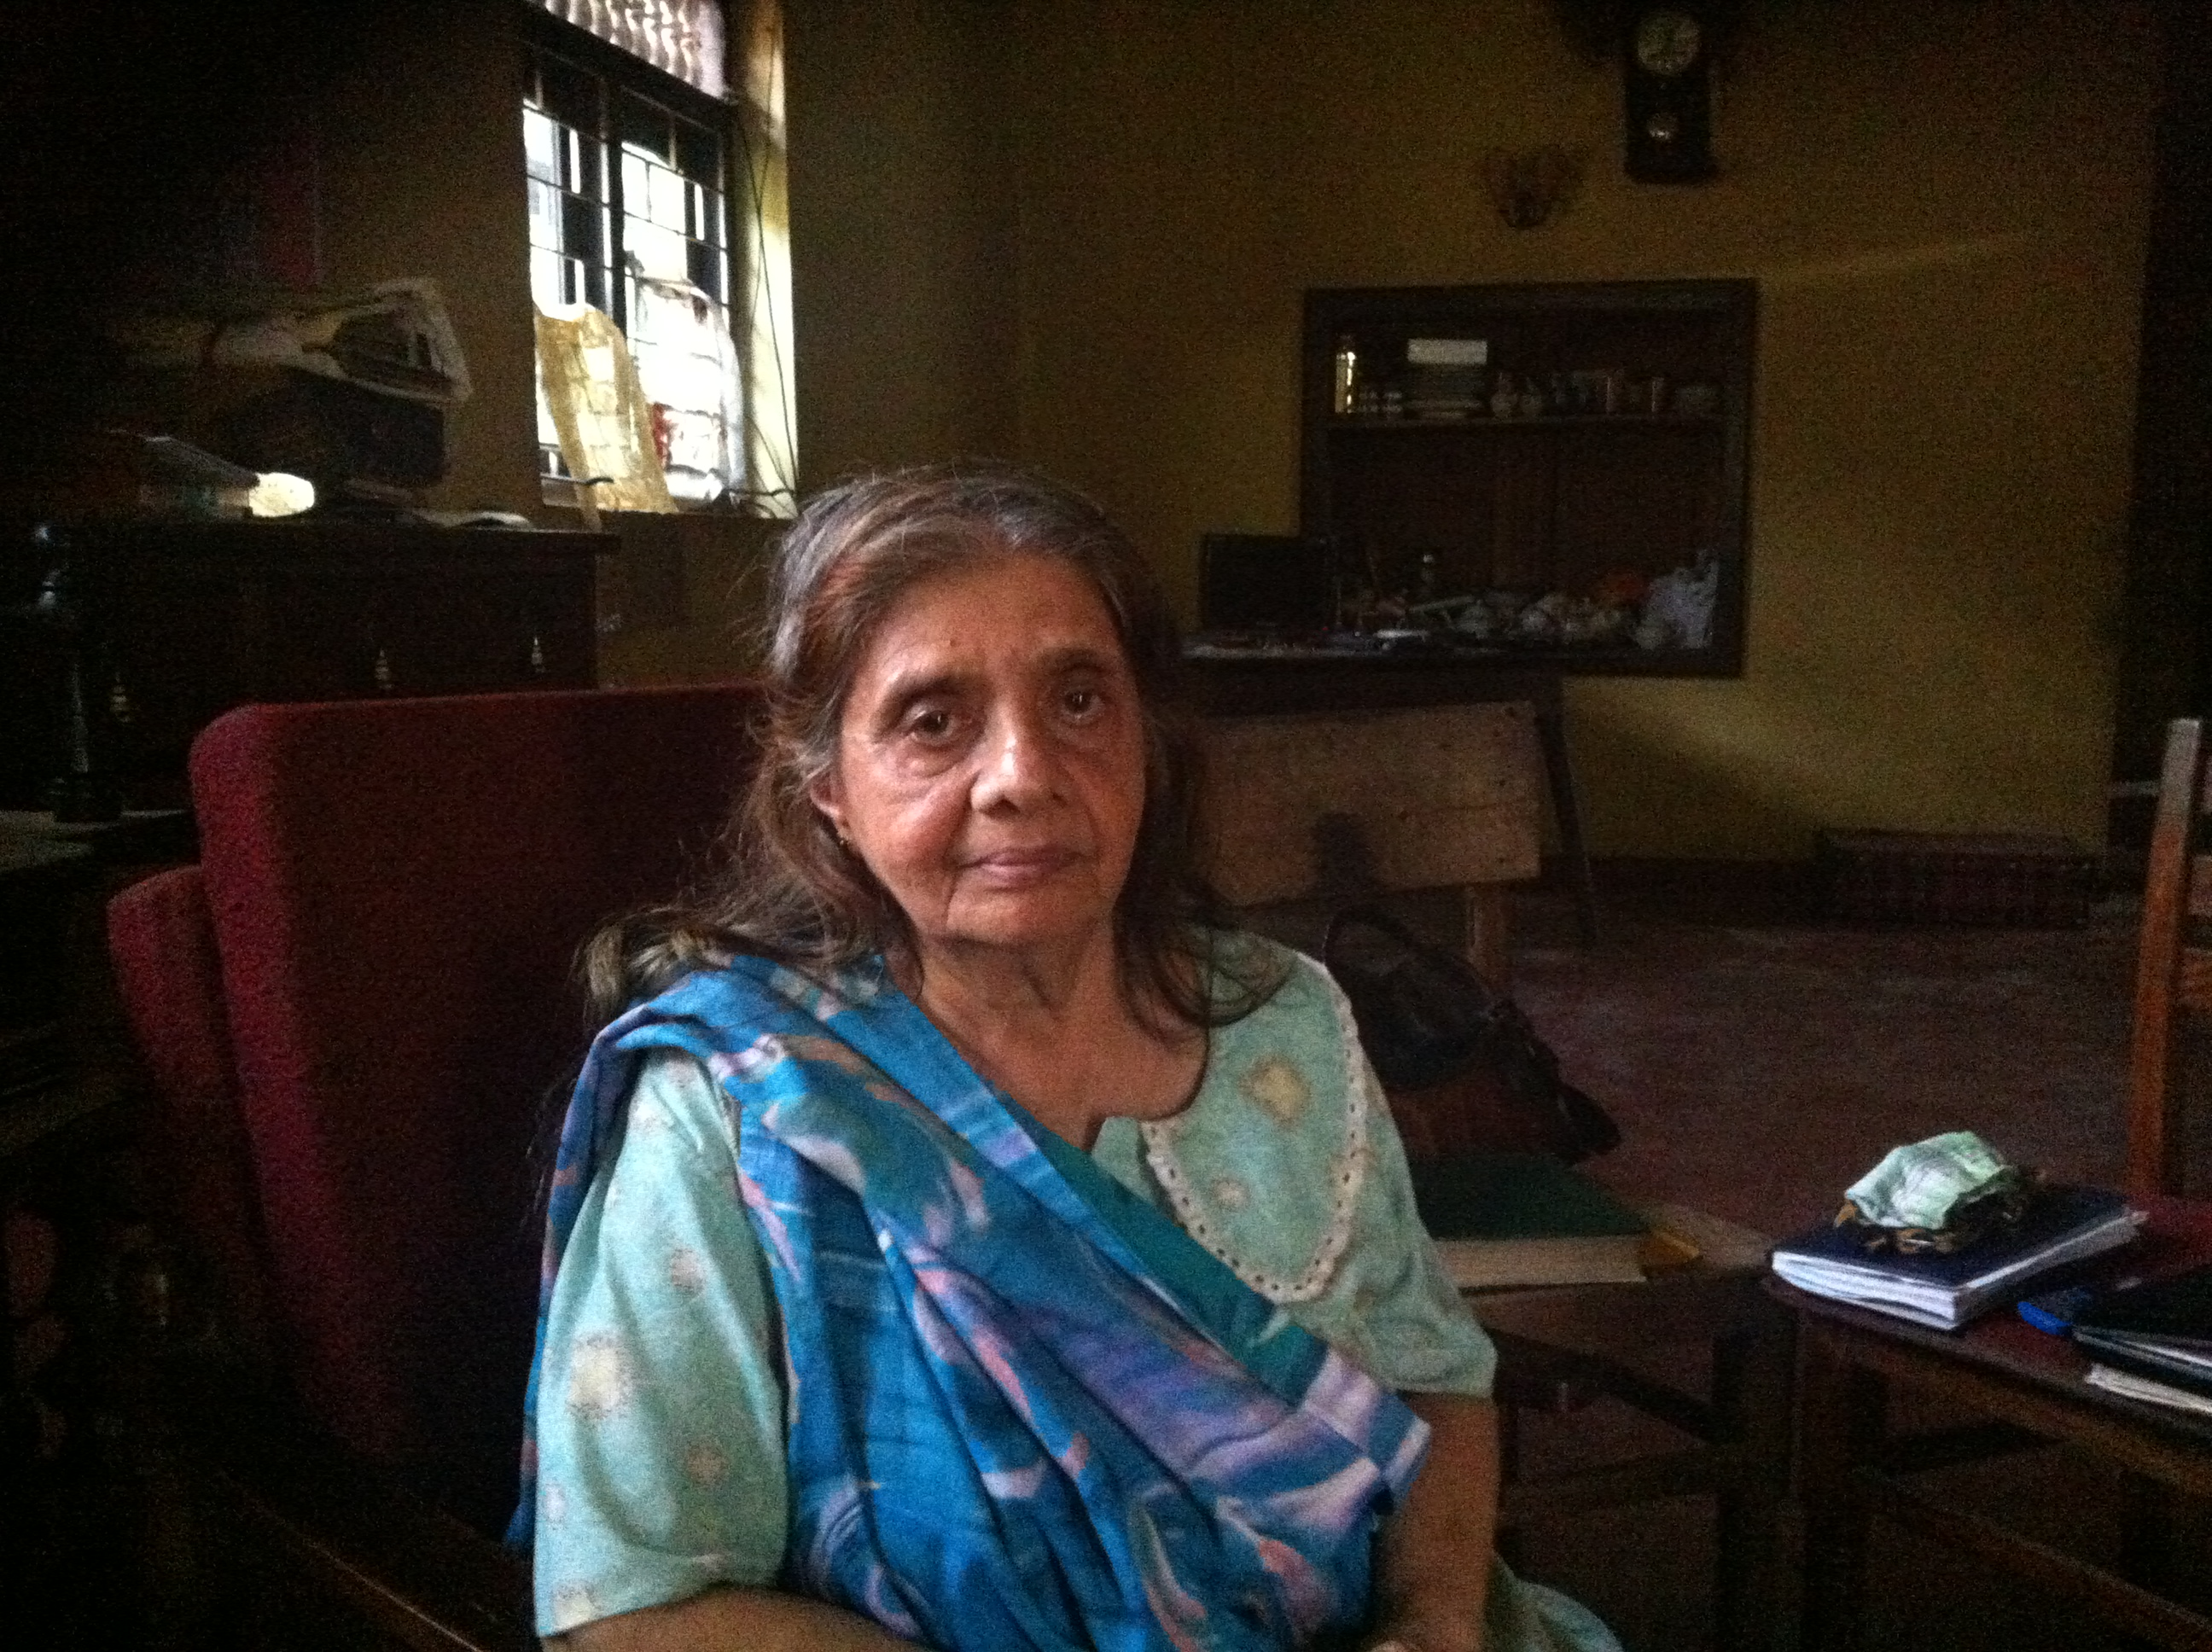 Nafeesathiek Thahira Sahabdeen, 68, at her ransacked home in Dharga Town, Sri Lanka.